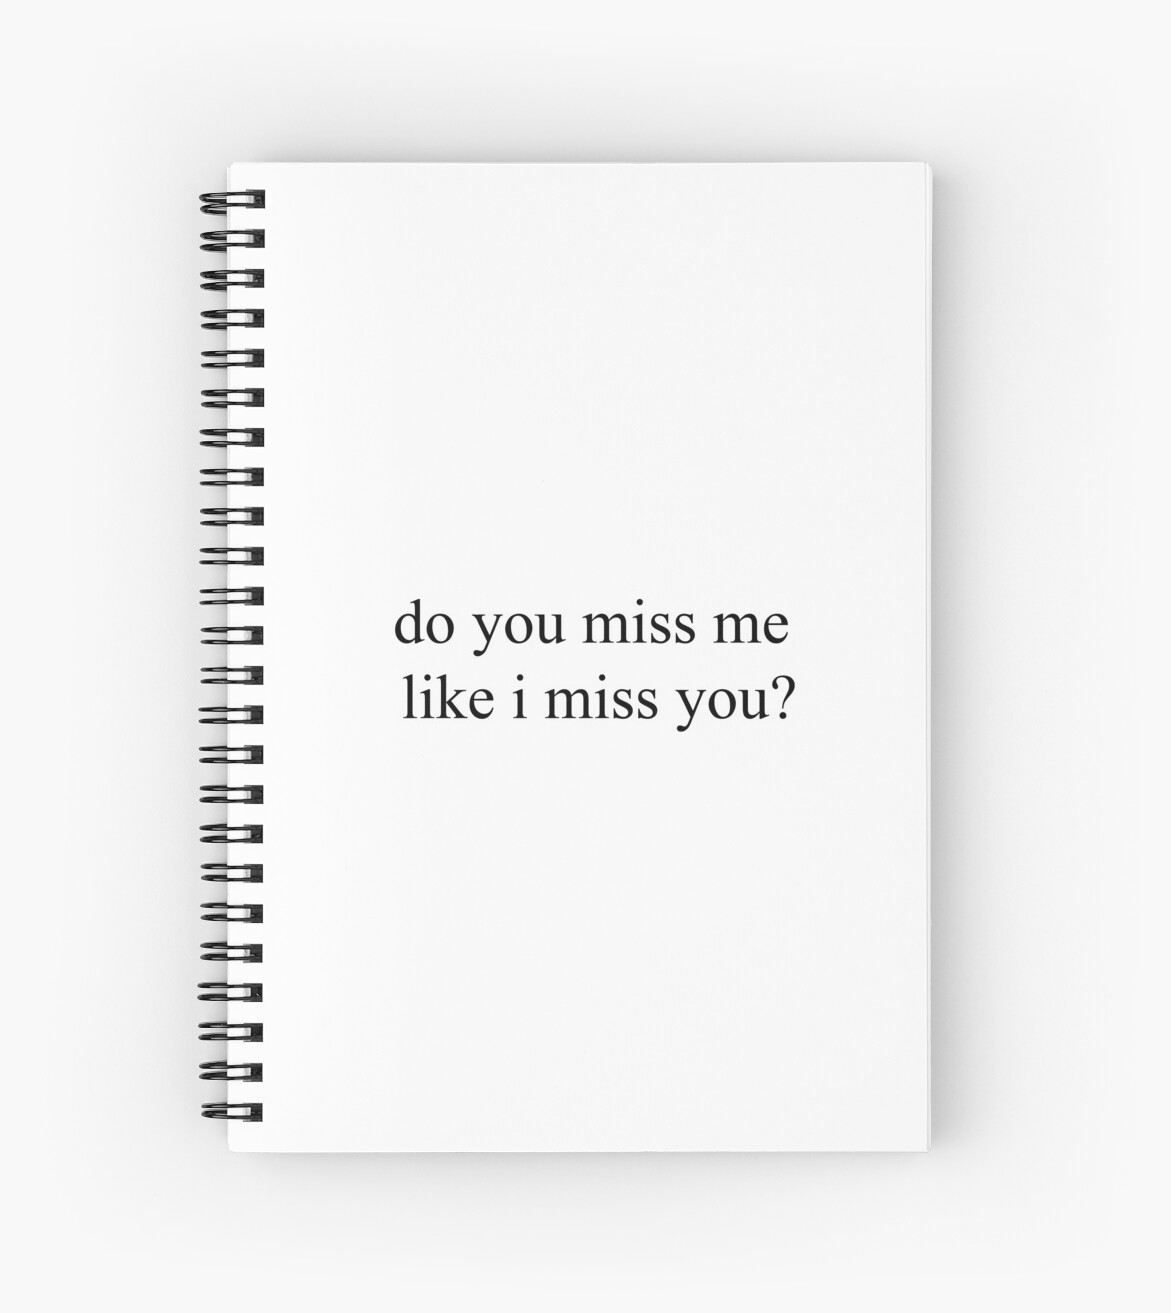 Do you miss me like i miss you top girly teenager quotes lyrics spiral notebook by elderart